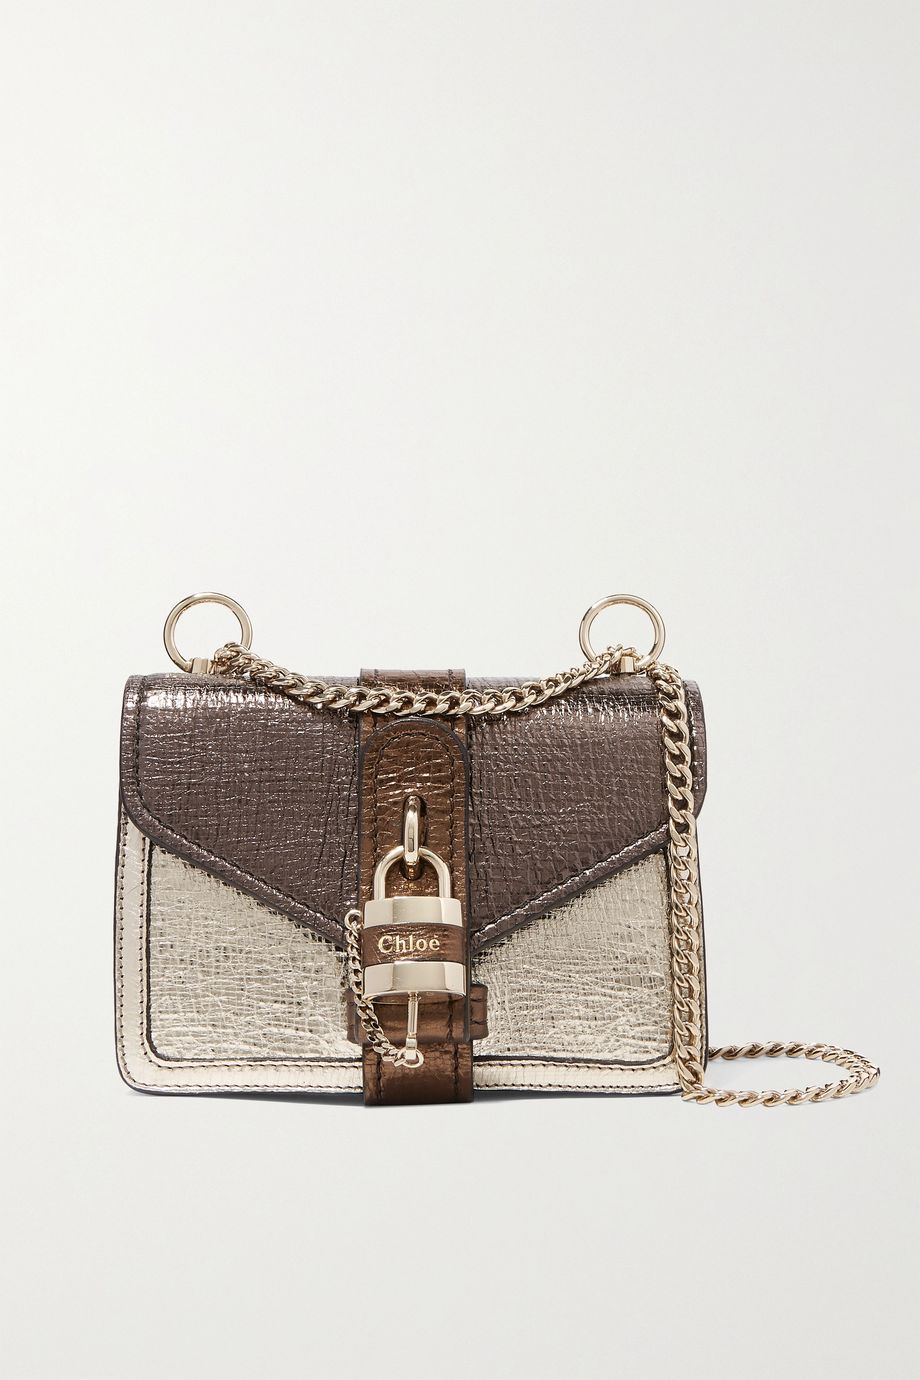 Chloé Aby Chain mini metallic color-block textured-leather shoulder bag